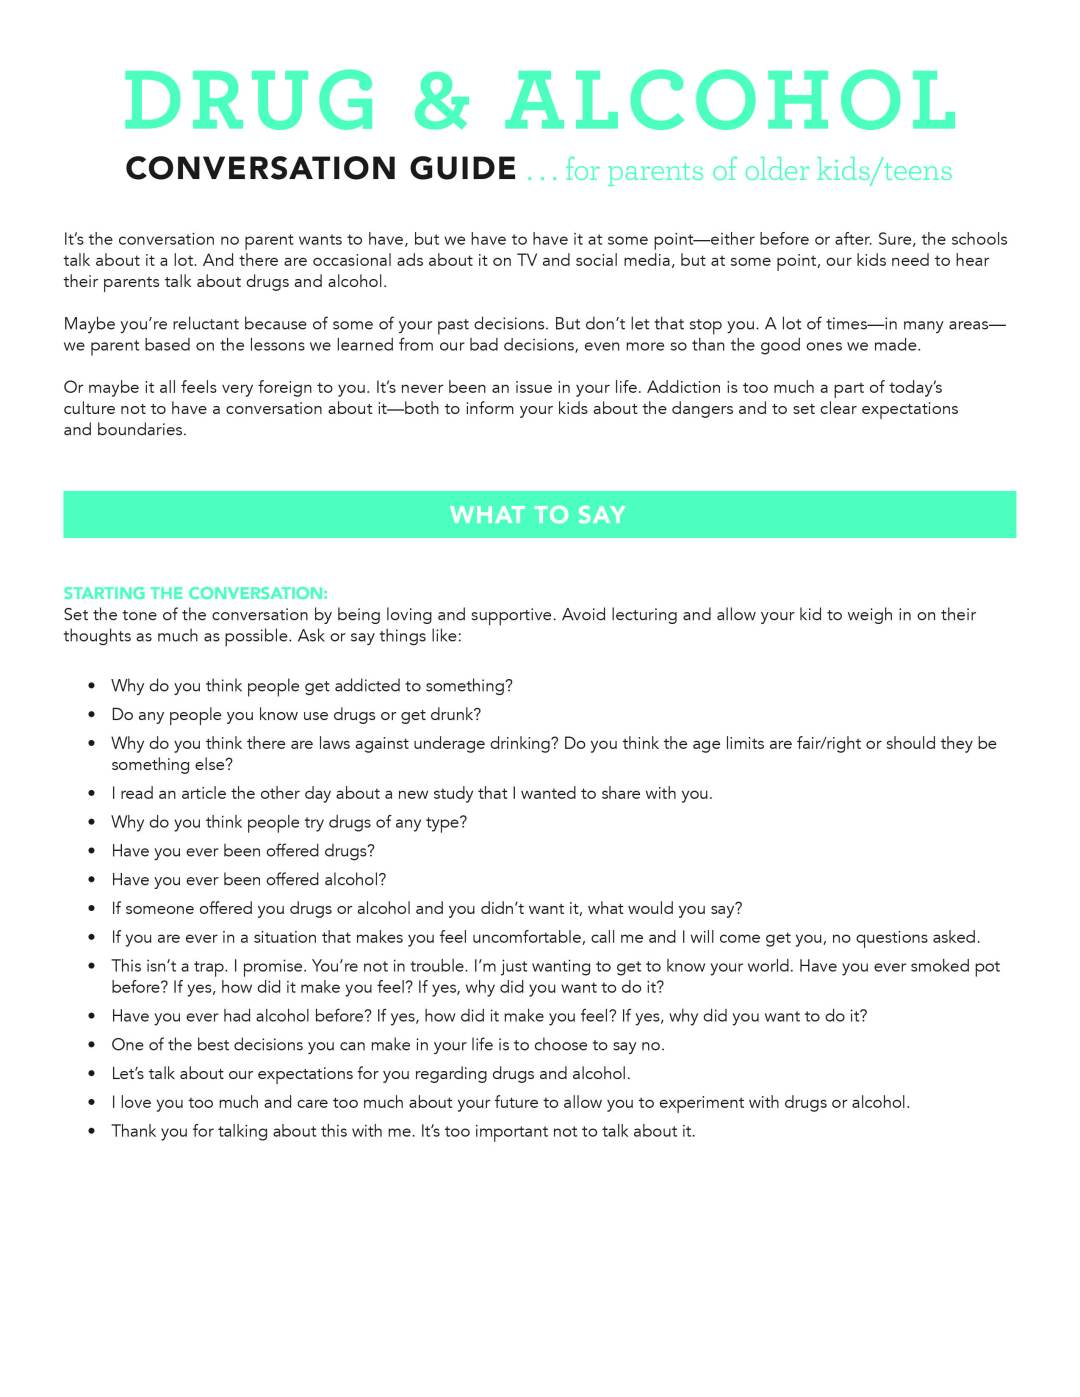 How To Start The Conversation About Drug Use >> Drug Alcohol Conversation Guide Parent Cue